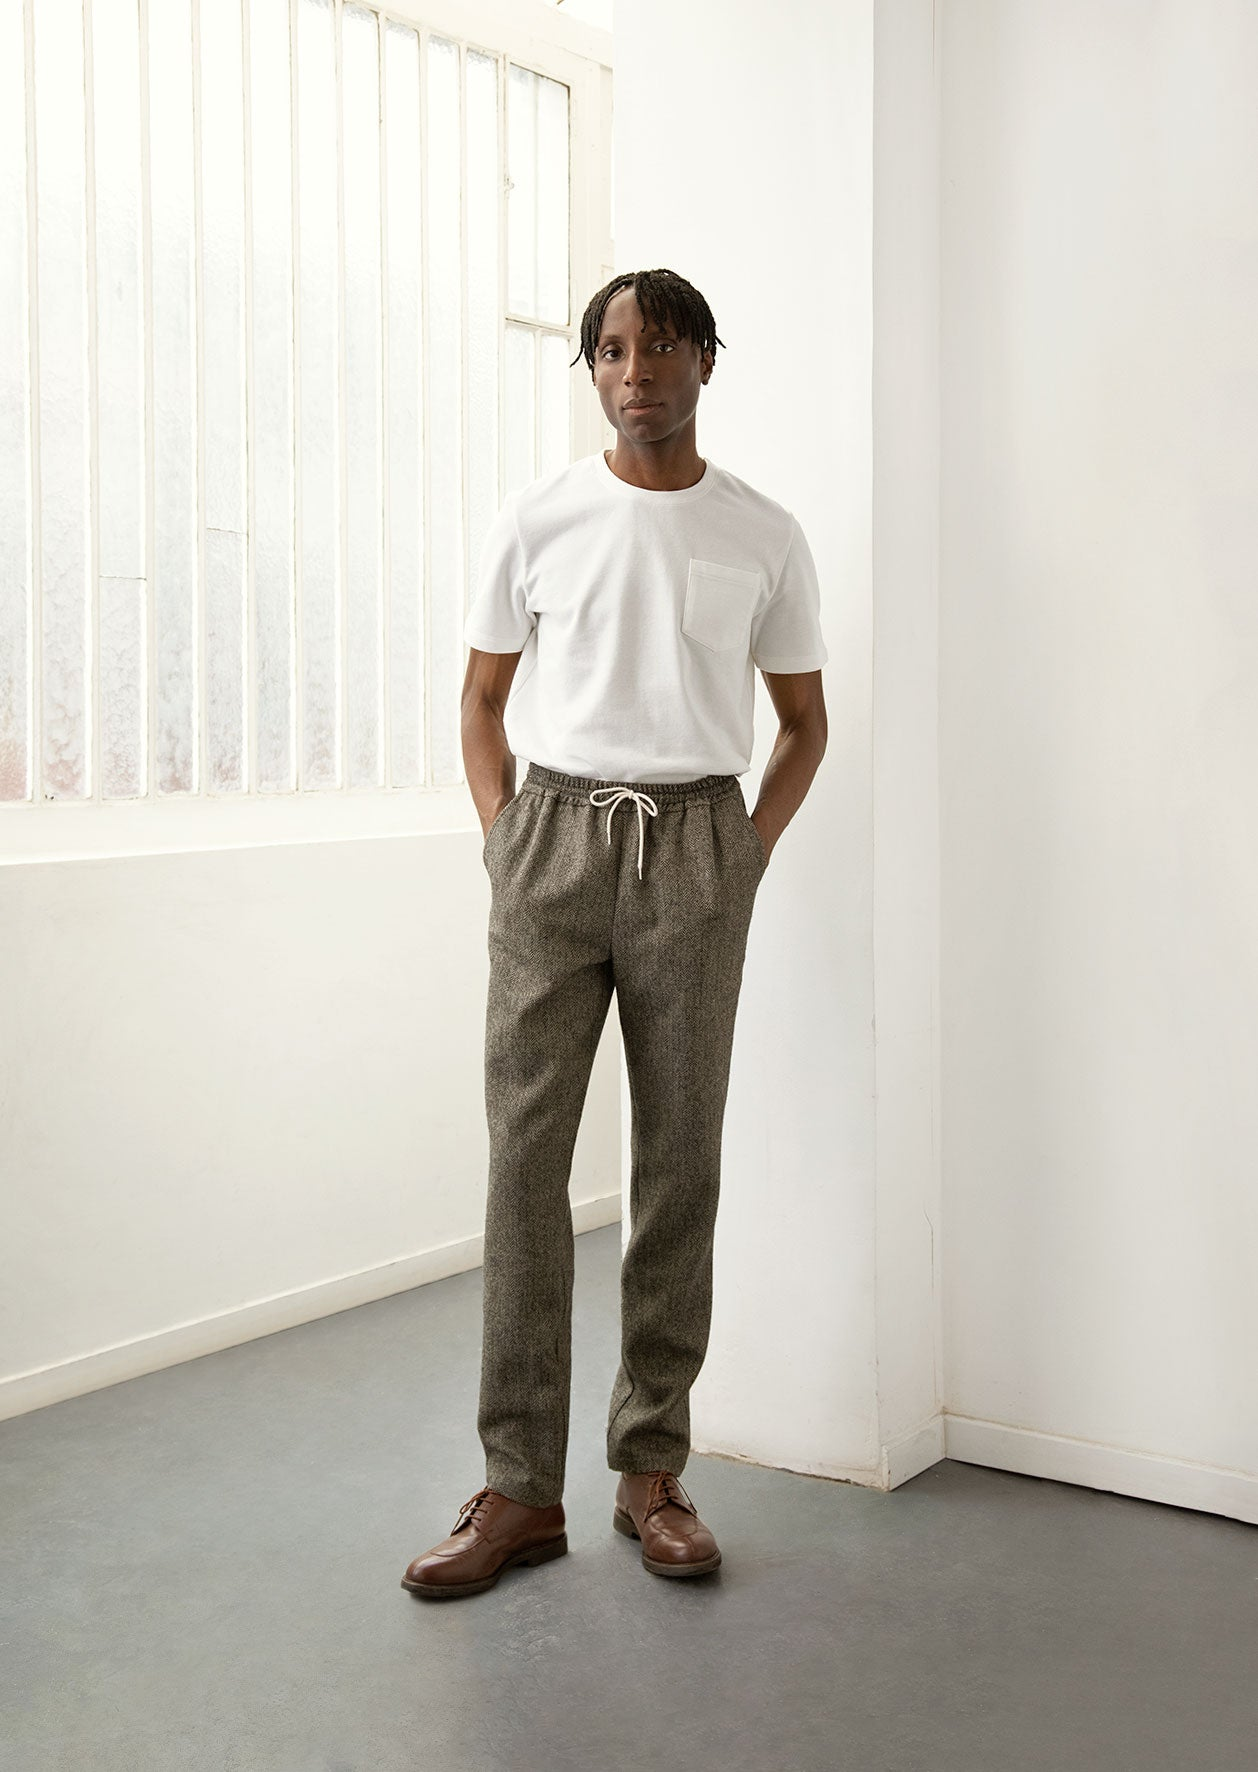 De Bonne Facture - Drawstring trousers - Brushed wool - Ecru & grey herringbone